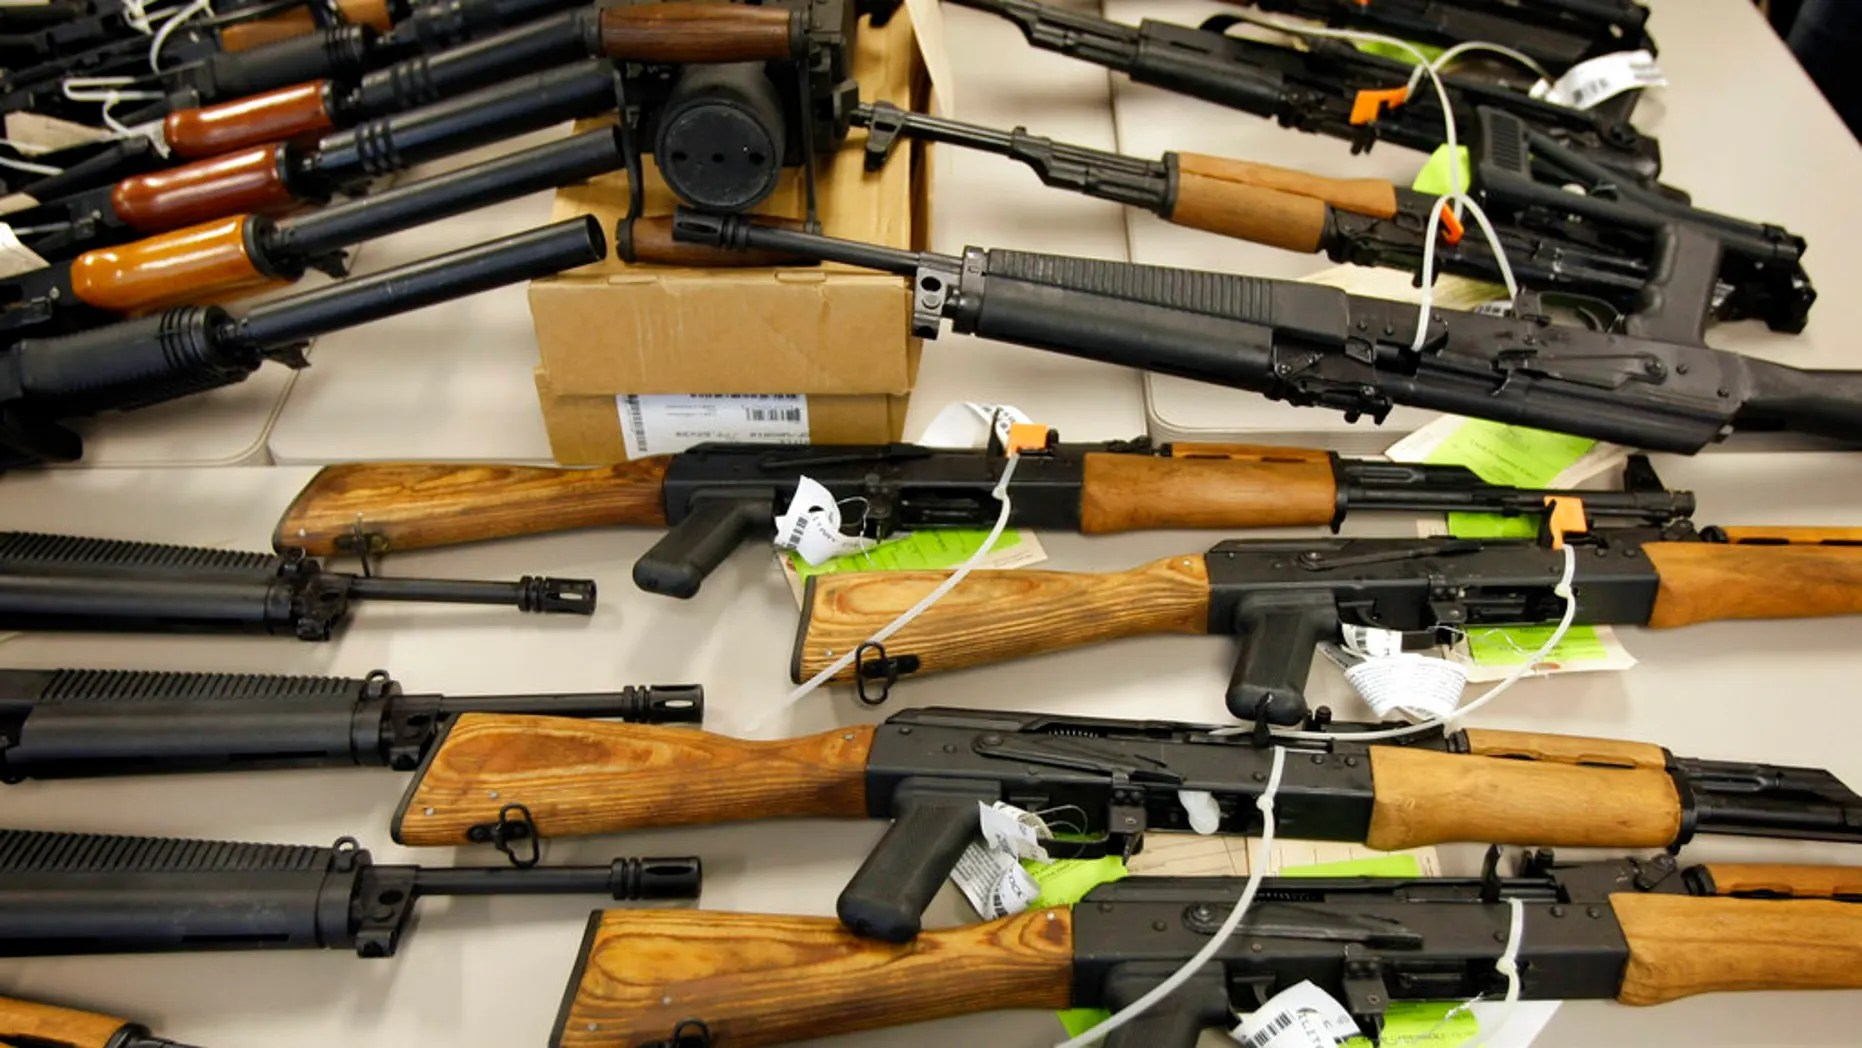 A cache of weapons seized by law enforcement that were to be smuggled into Mexico is displayed in Phoenix.